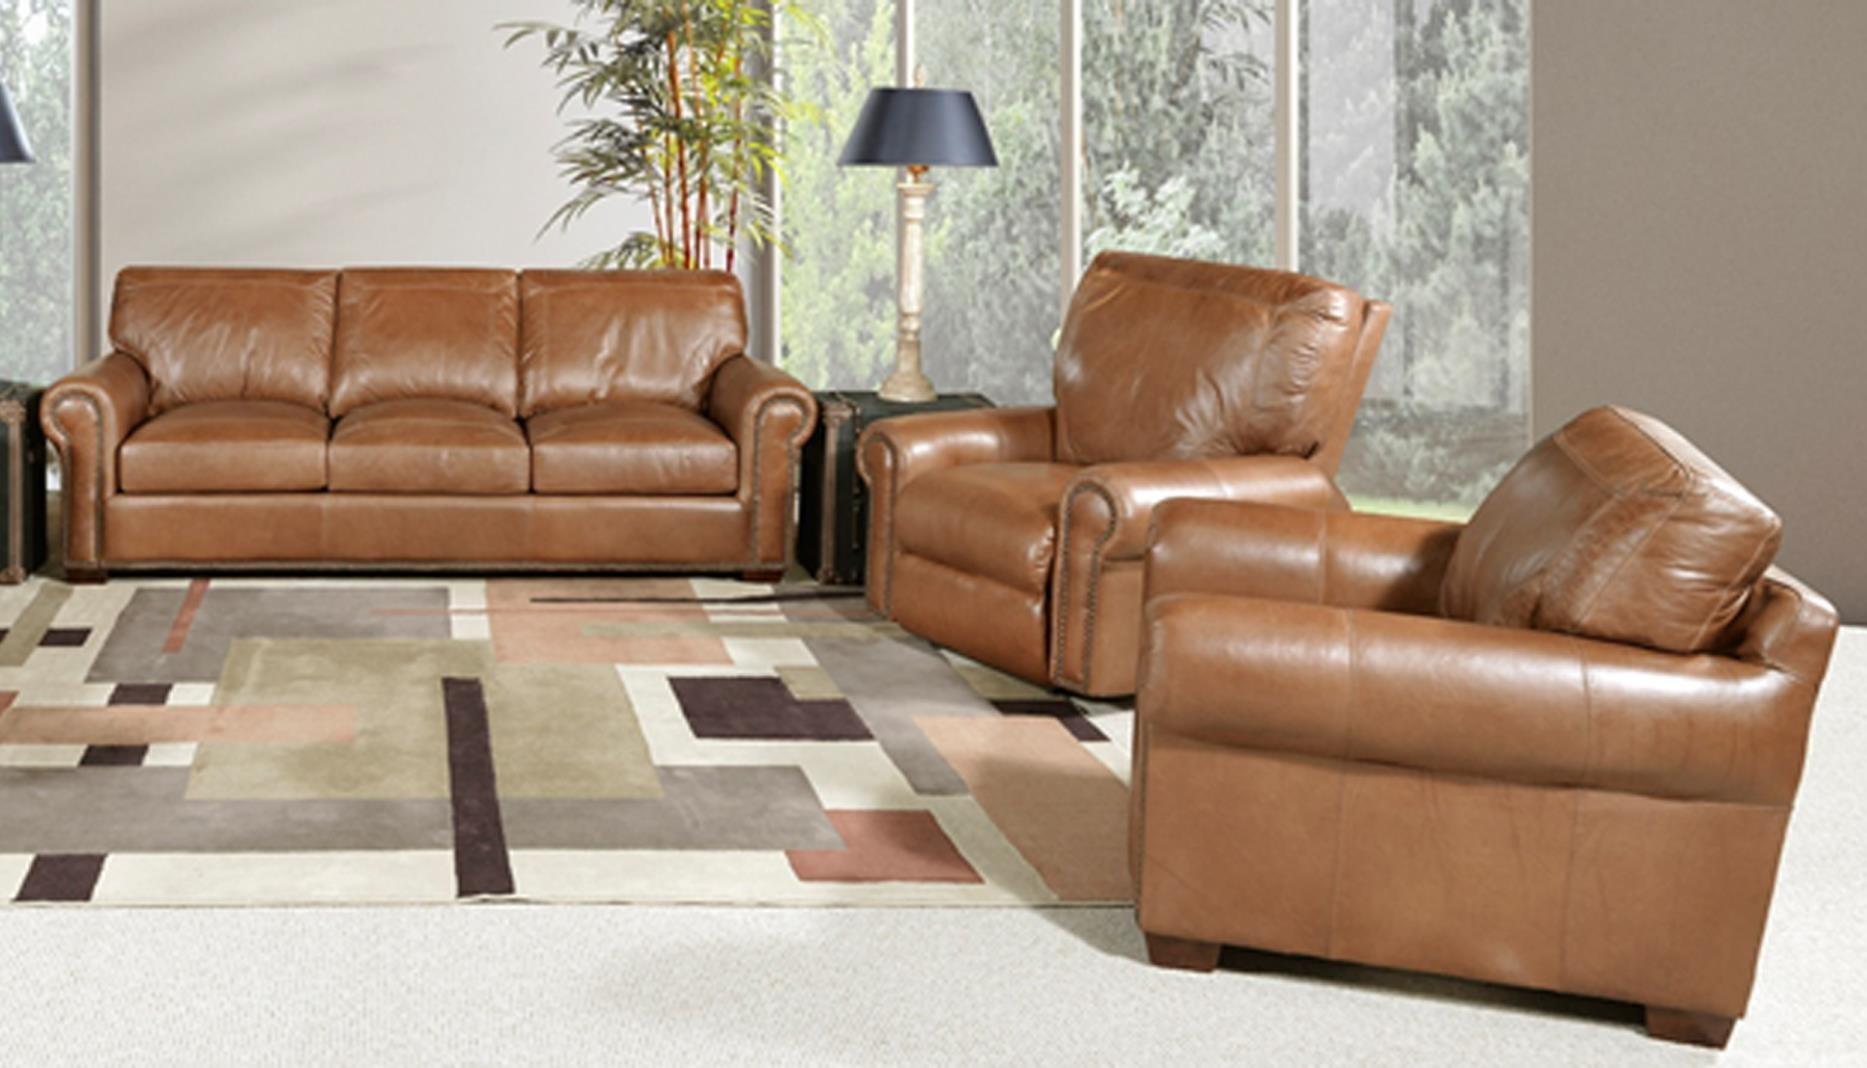 Saddle Gator Sofa and Chair Set by USA Premium Leather at Sam Levitz Outlet